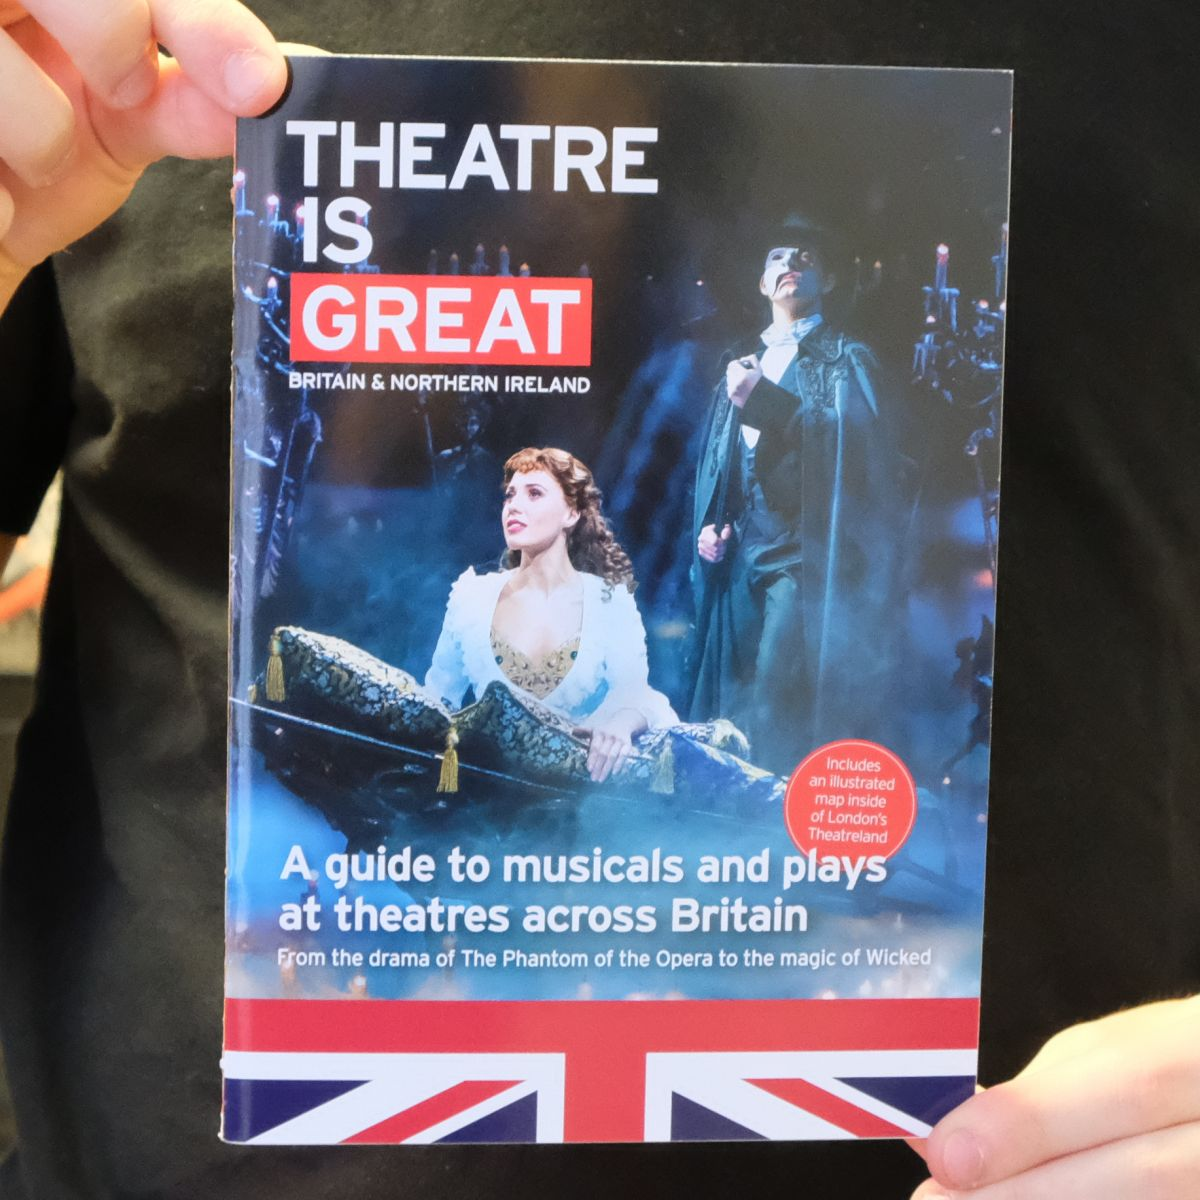 Theatre is GREAT shortlisted for Commercial Partnership of the Year